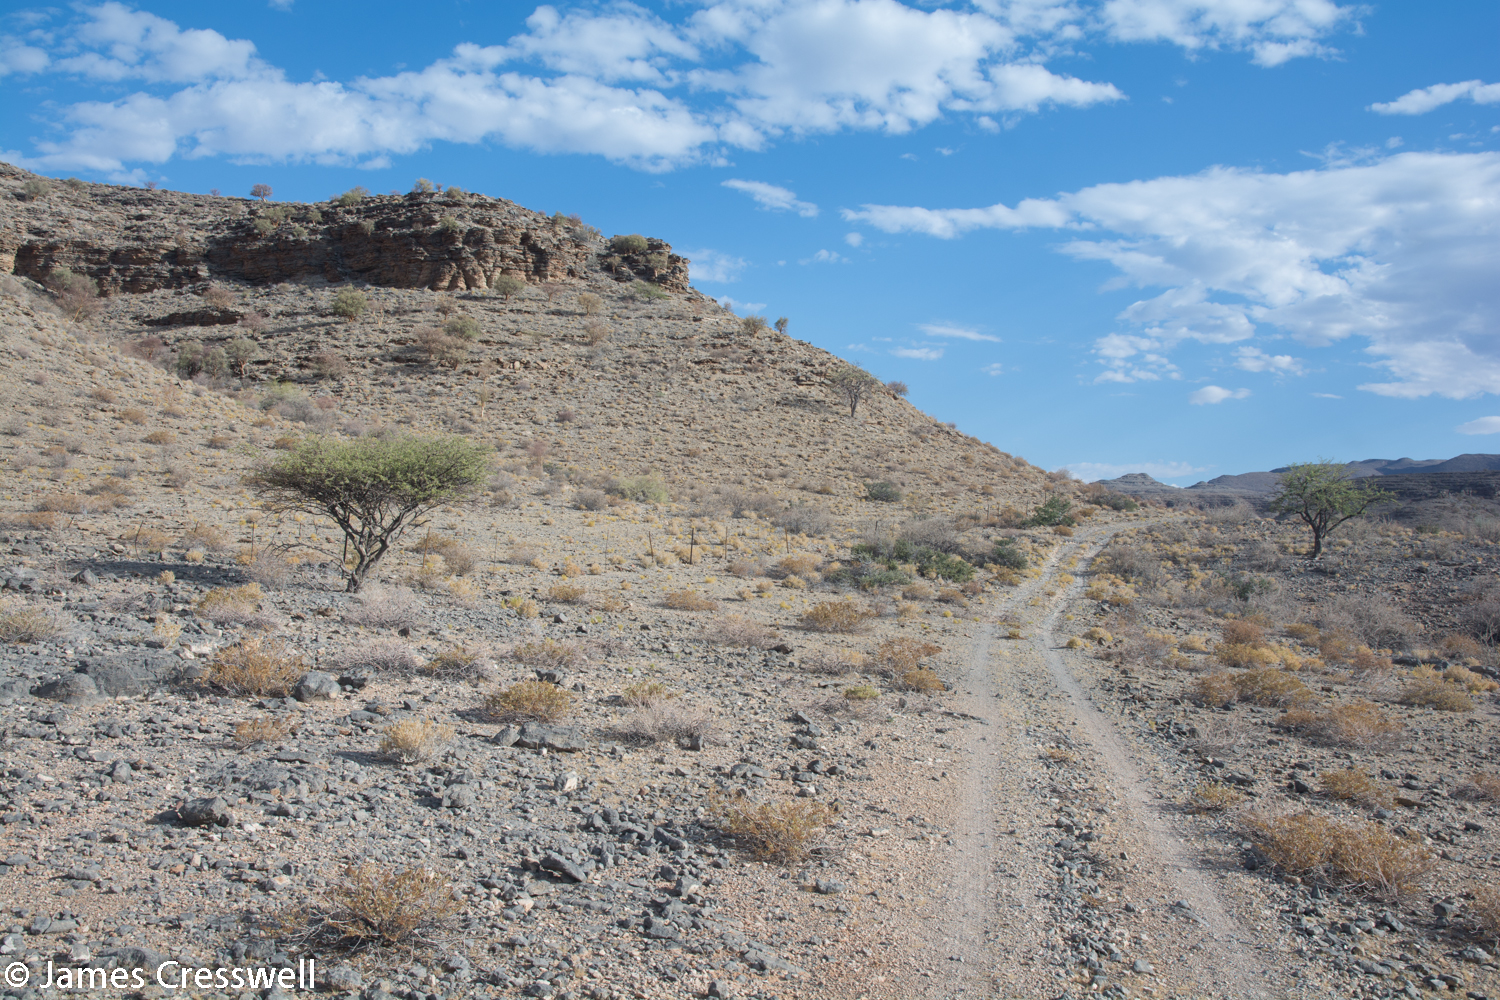 The road near Zebra River Lodge, Namibia where the Namacalathas fossils occur